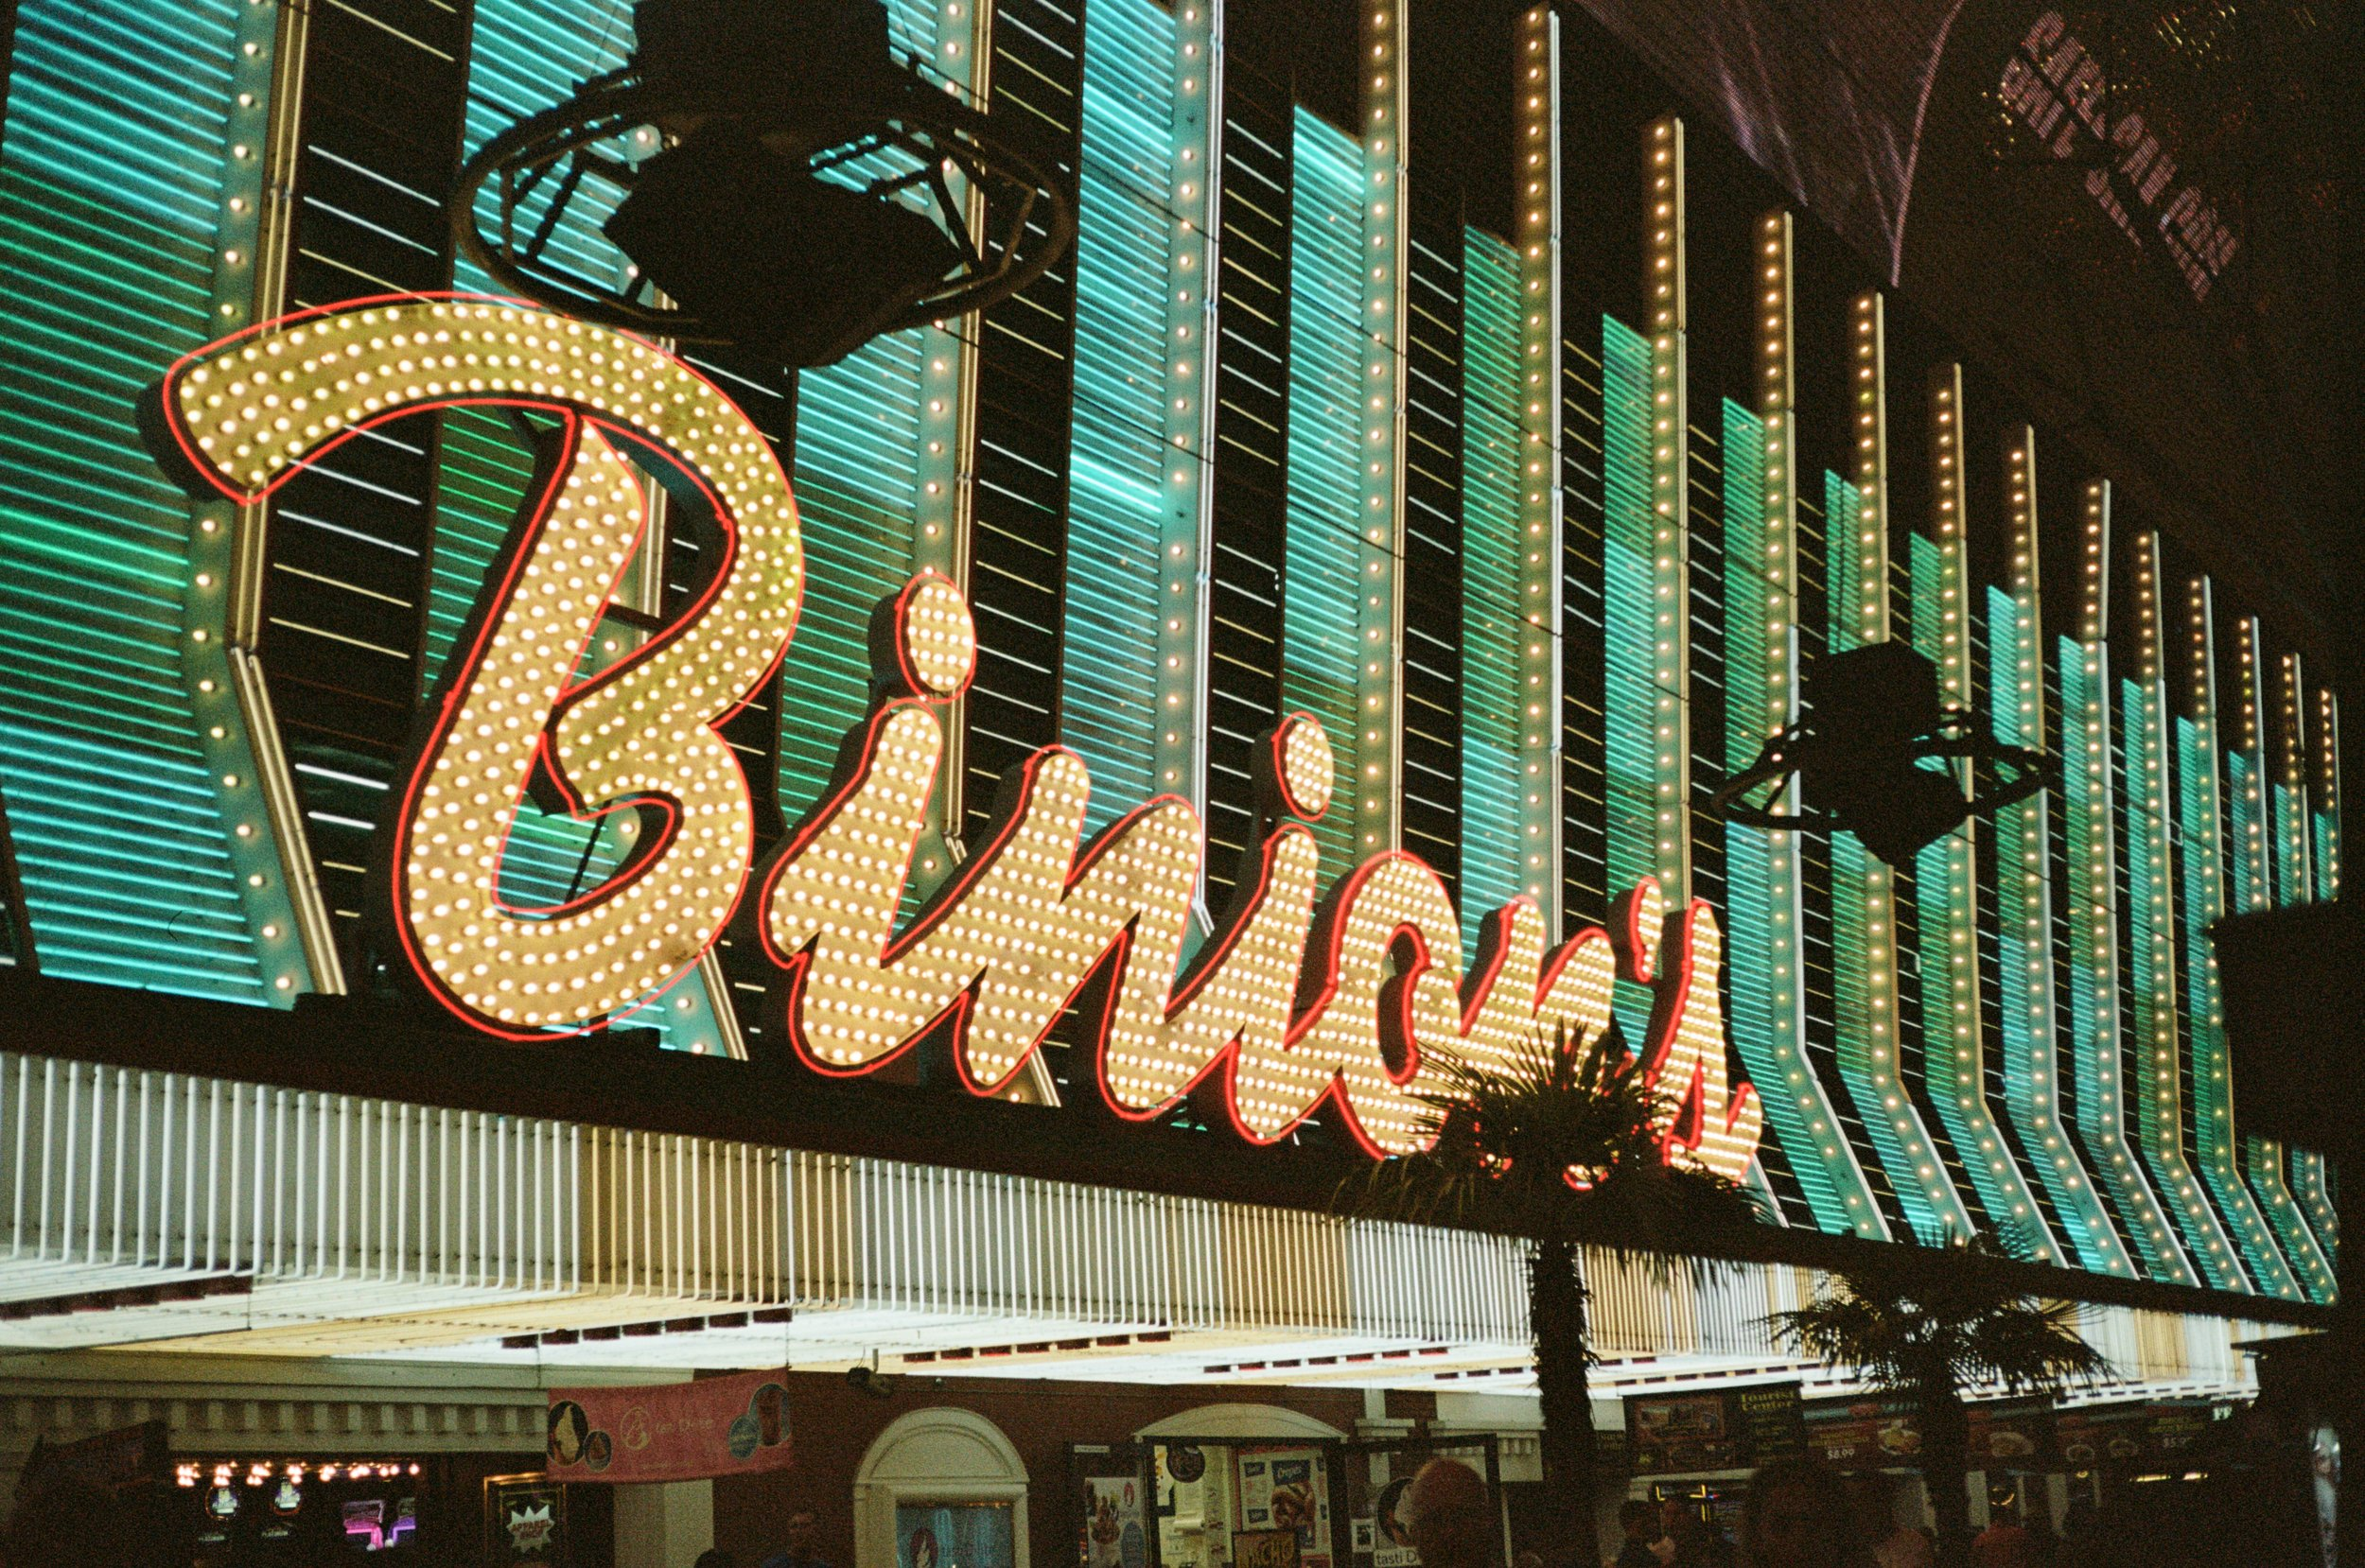 Binion's, Las Vegas, NV on Portra 160 35 mm film